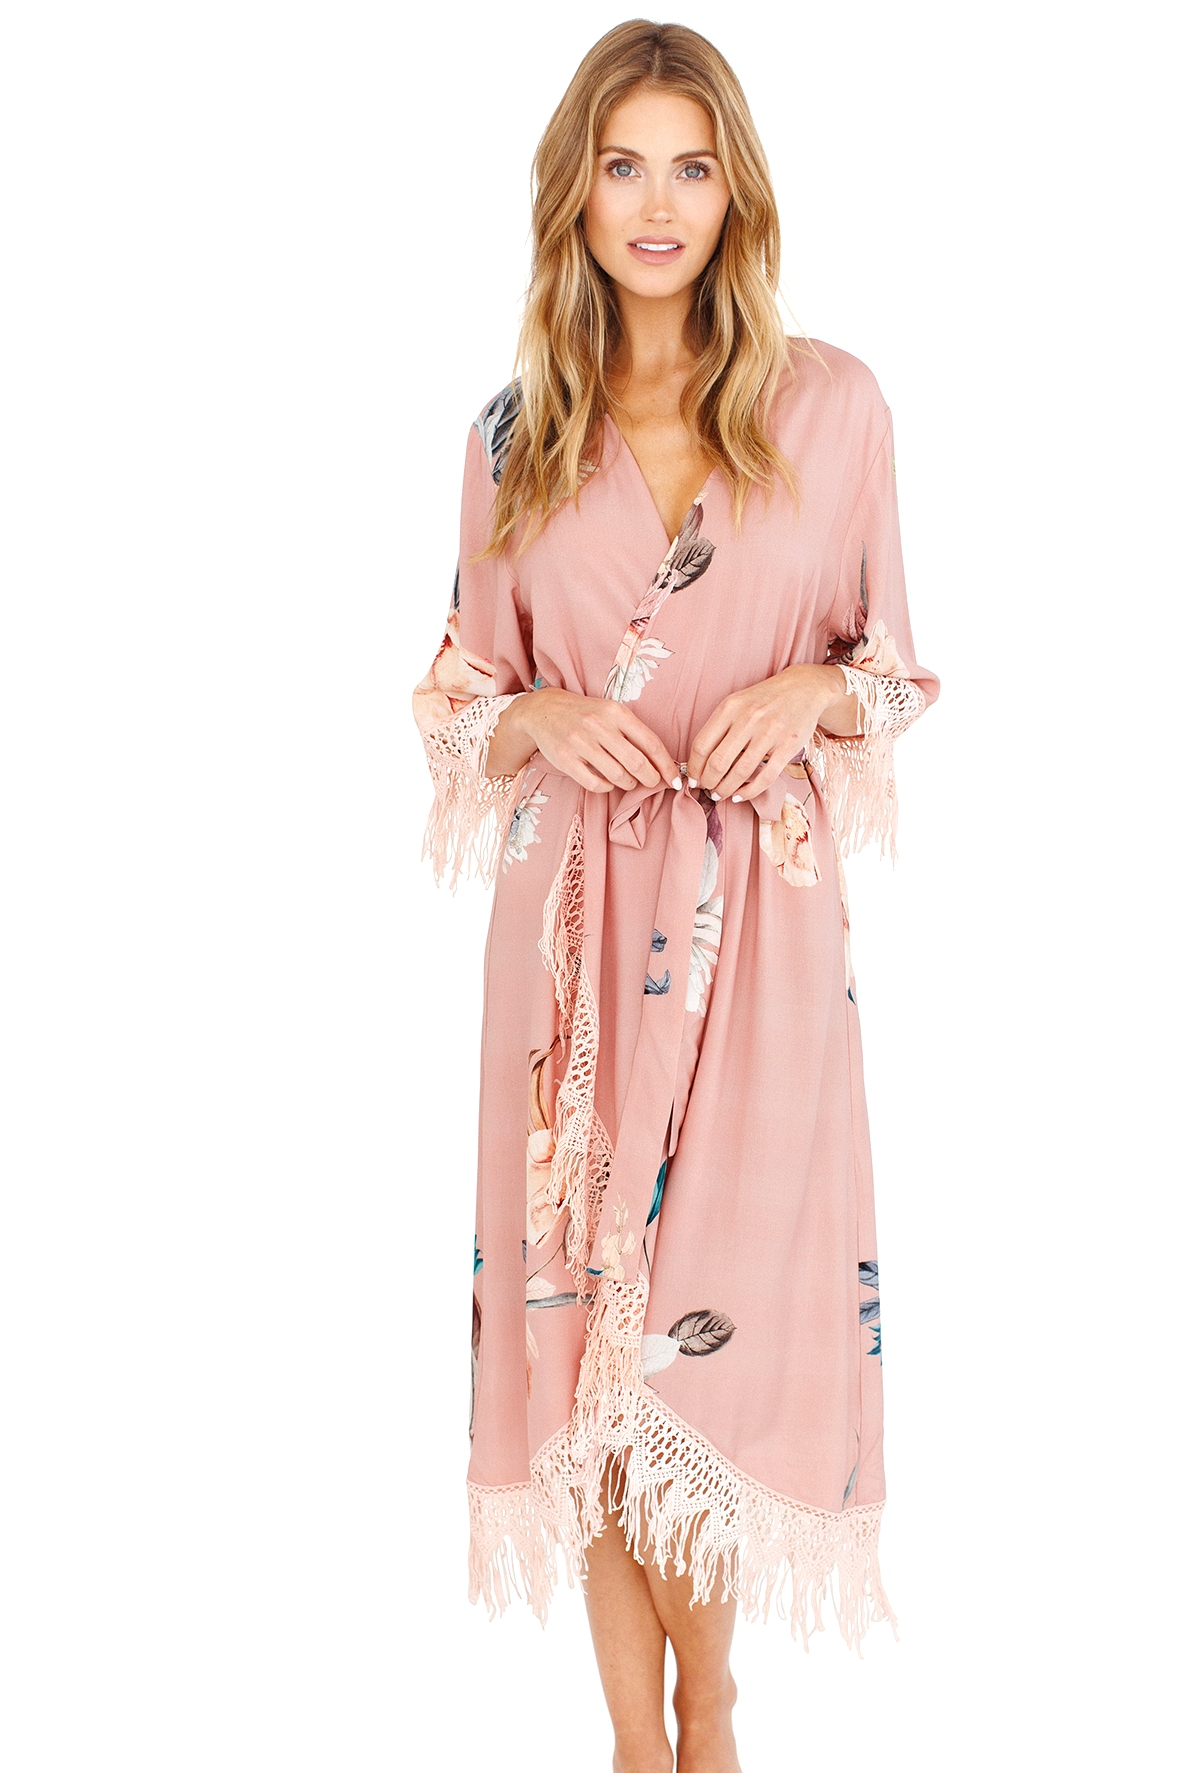 floral robe for bridesmaids and bride, fringed robe, pink robe